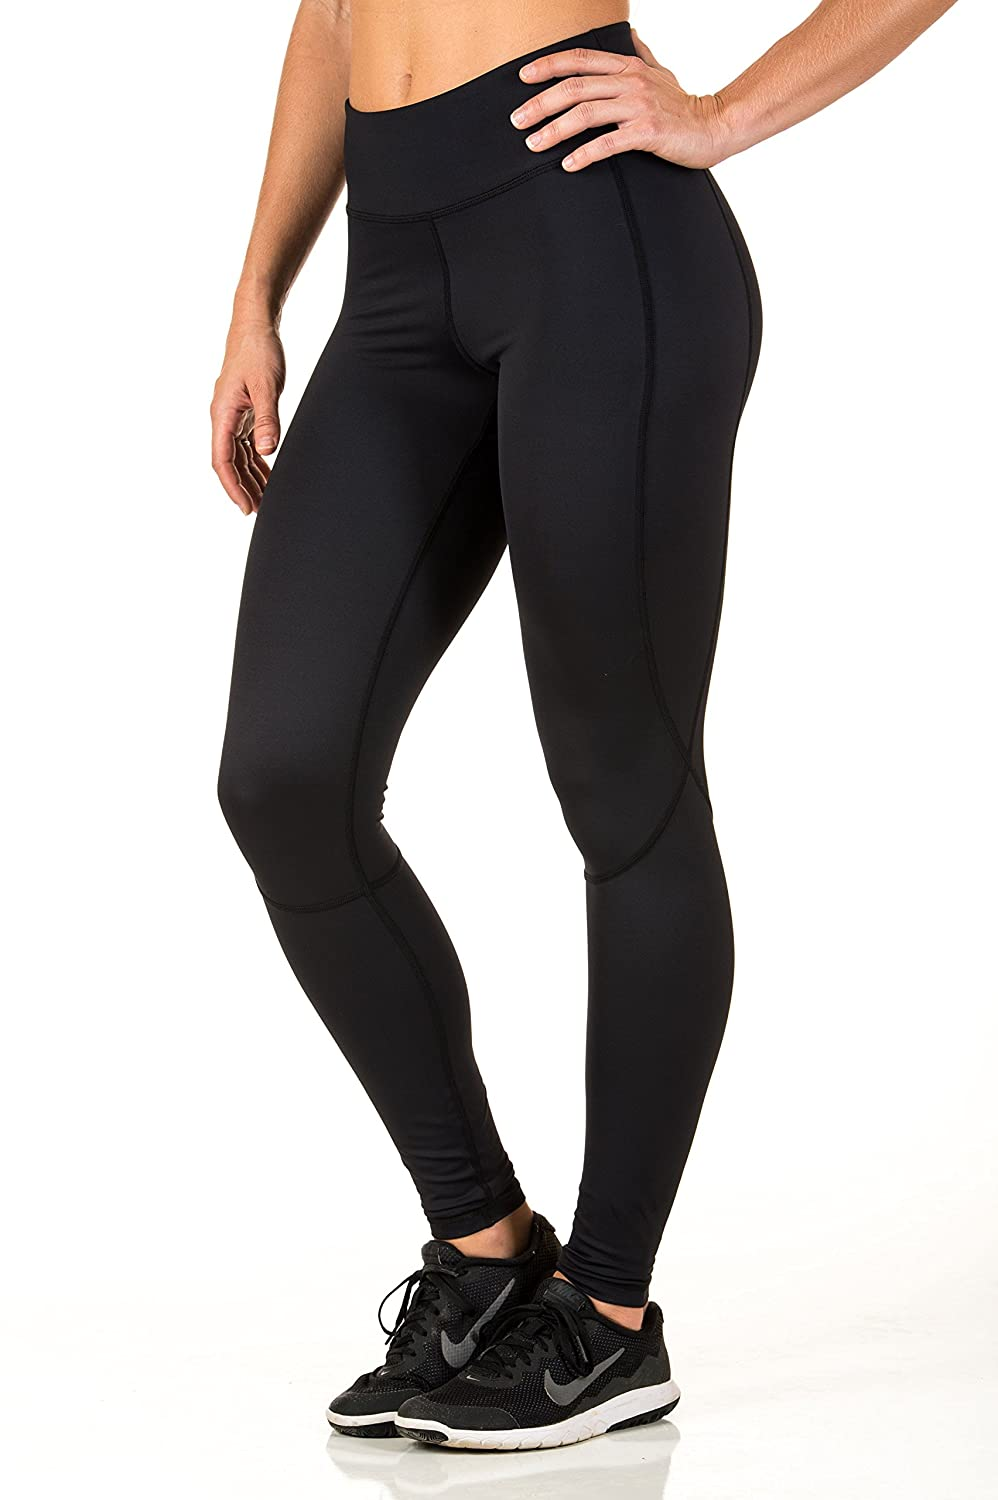 7e3f5e7c52449 Foxy Athletics Carla Tight ~ Jet Black at Amazon Women's Clothing store: